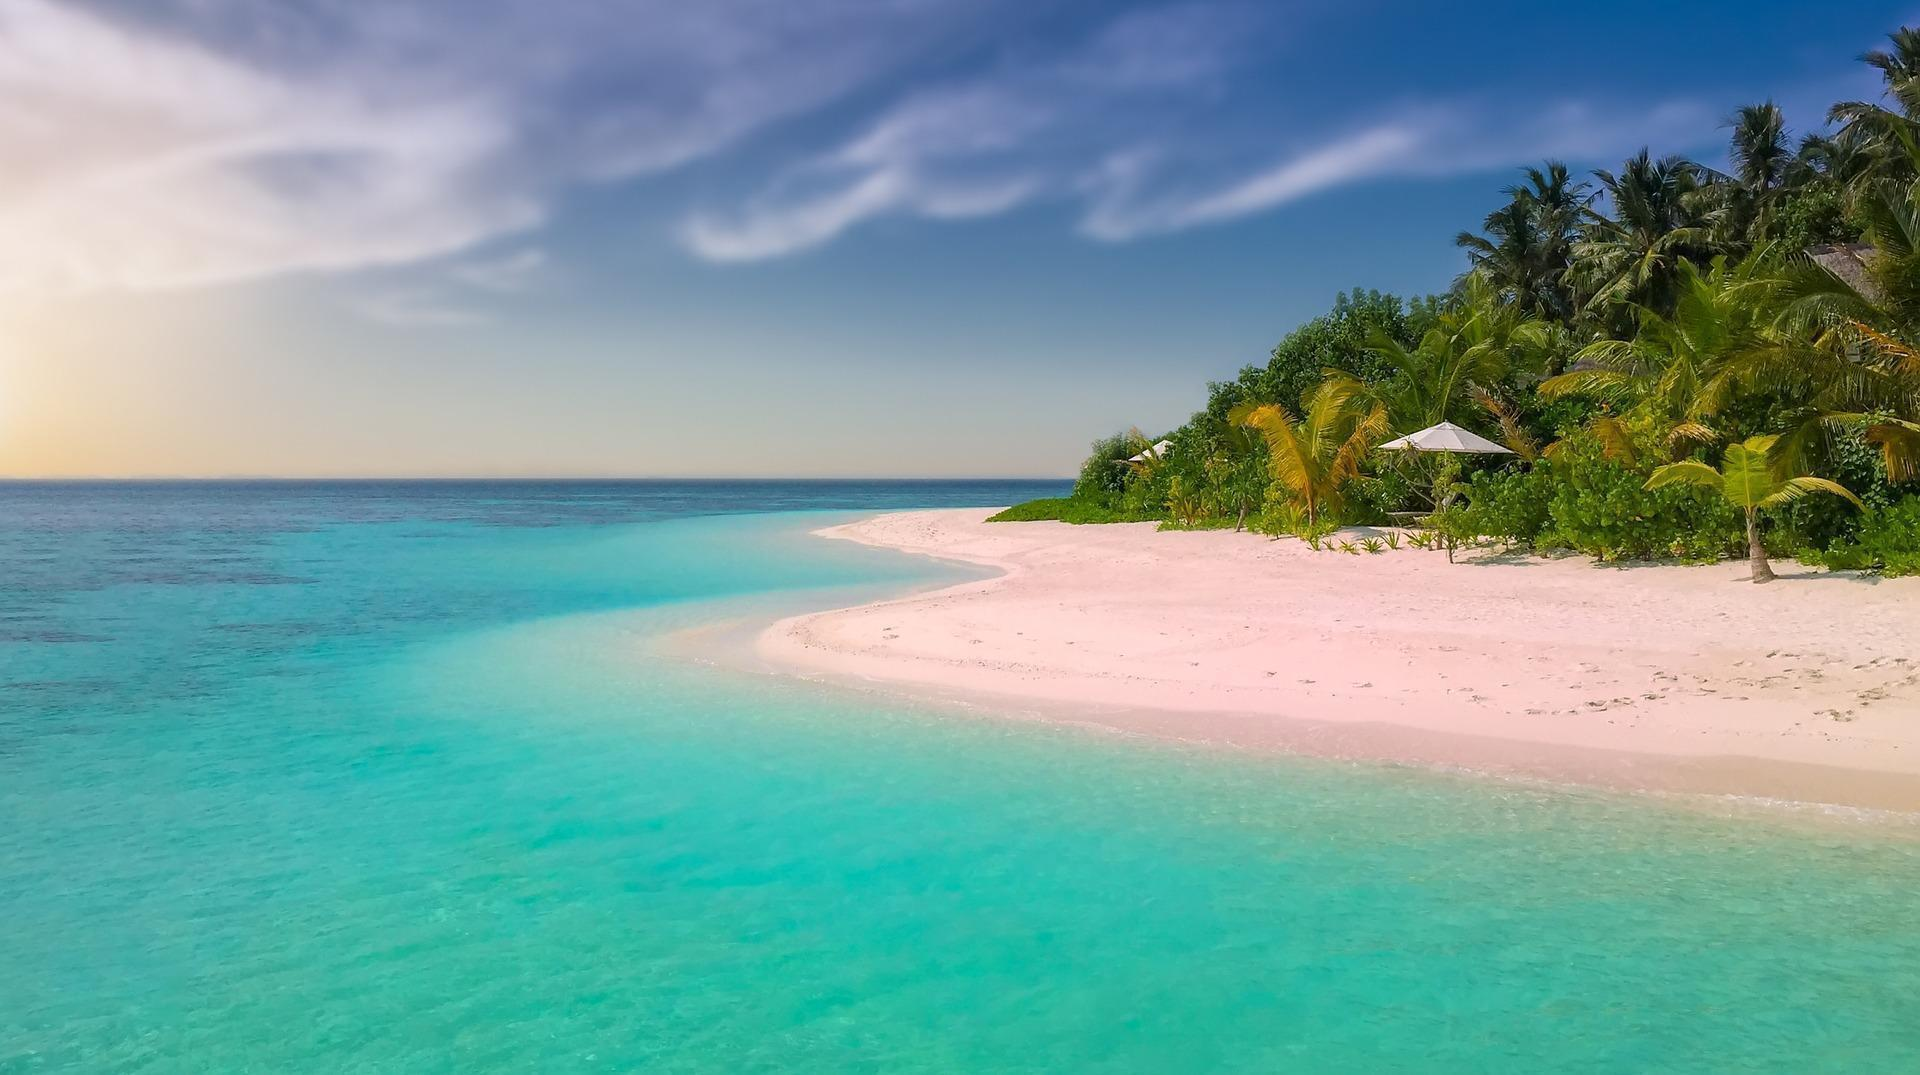 White sand tropical beach on island paradise with palm trees